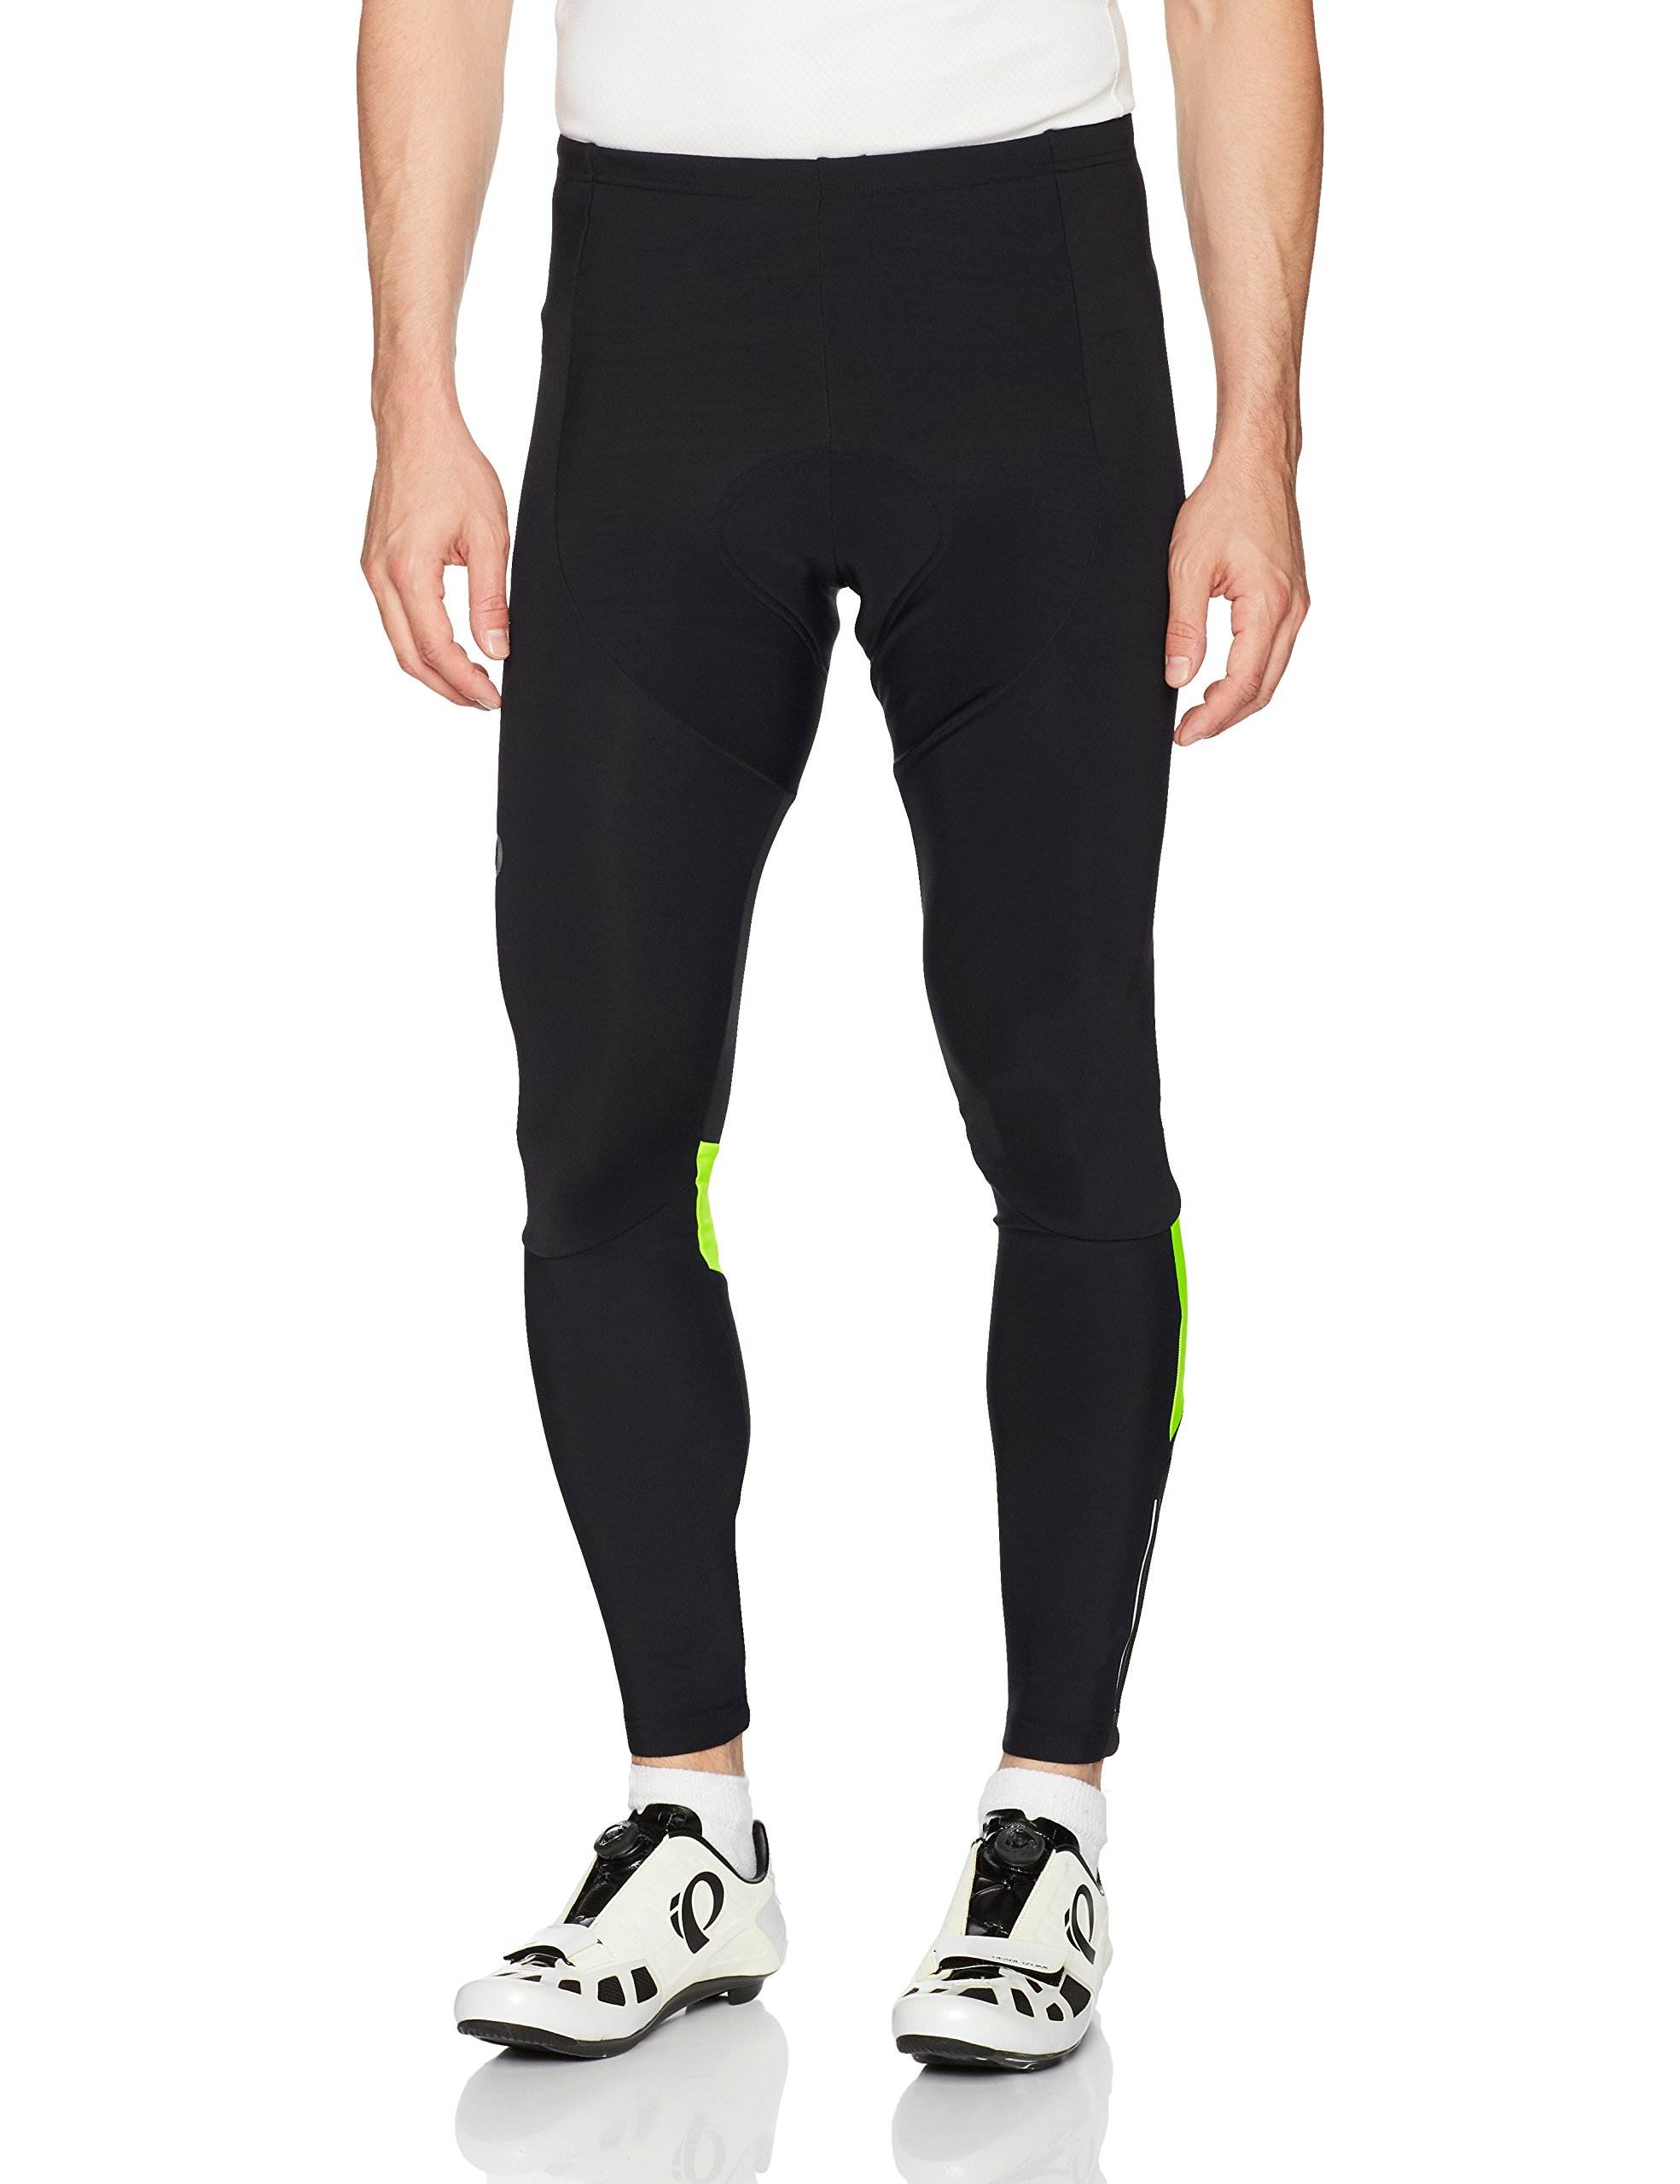 Pearl iZUMi Pursuit Thermal Cycling Tights, Black/Screaming Yellow, Small